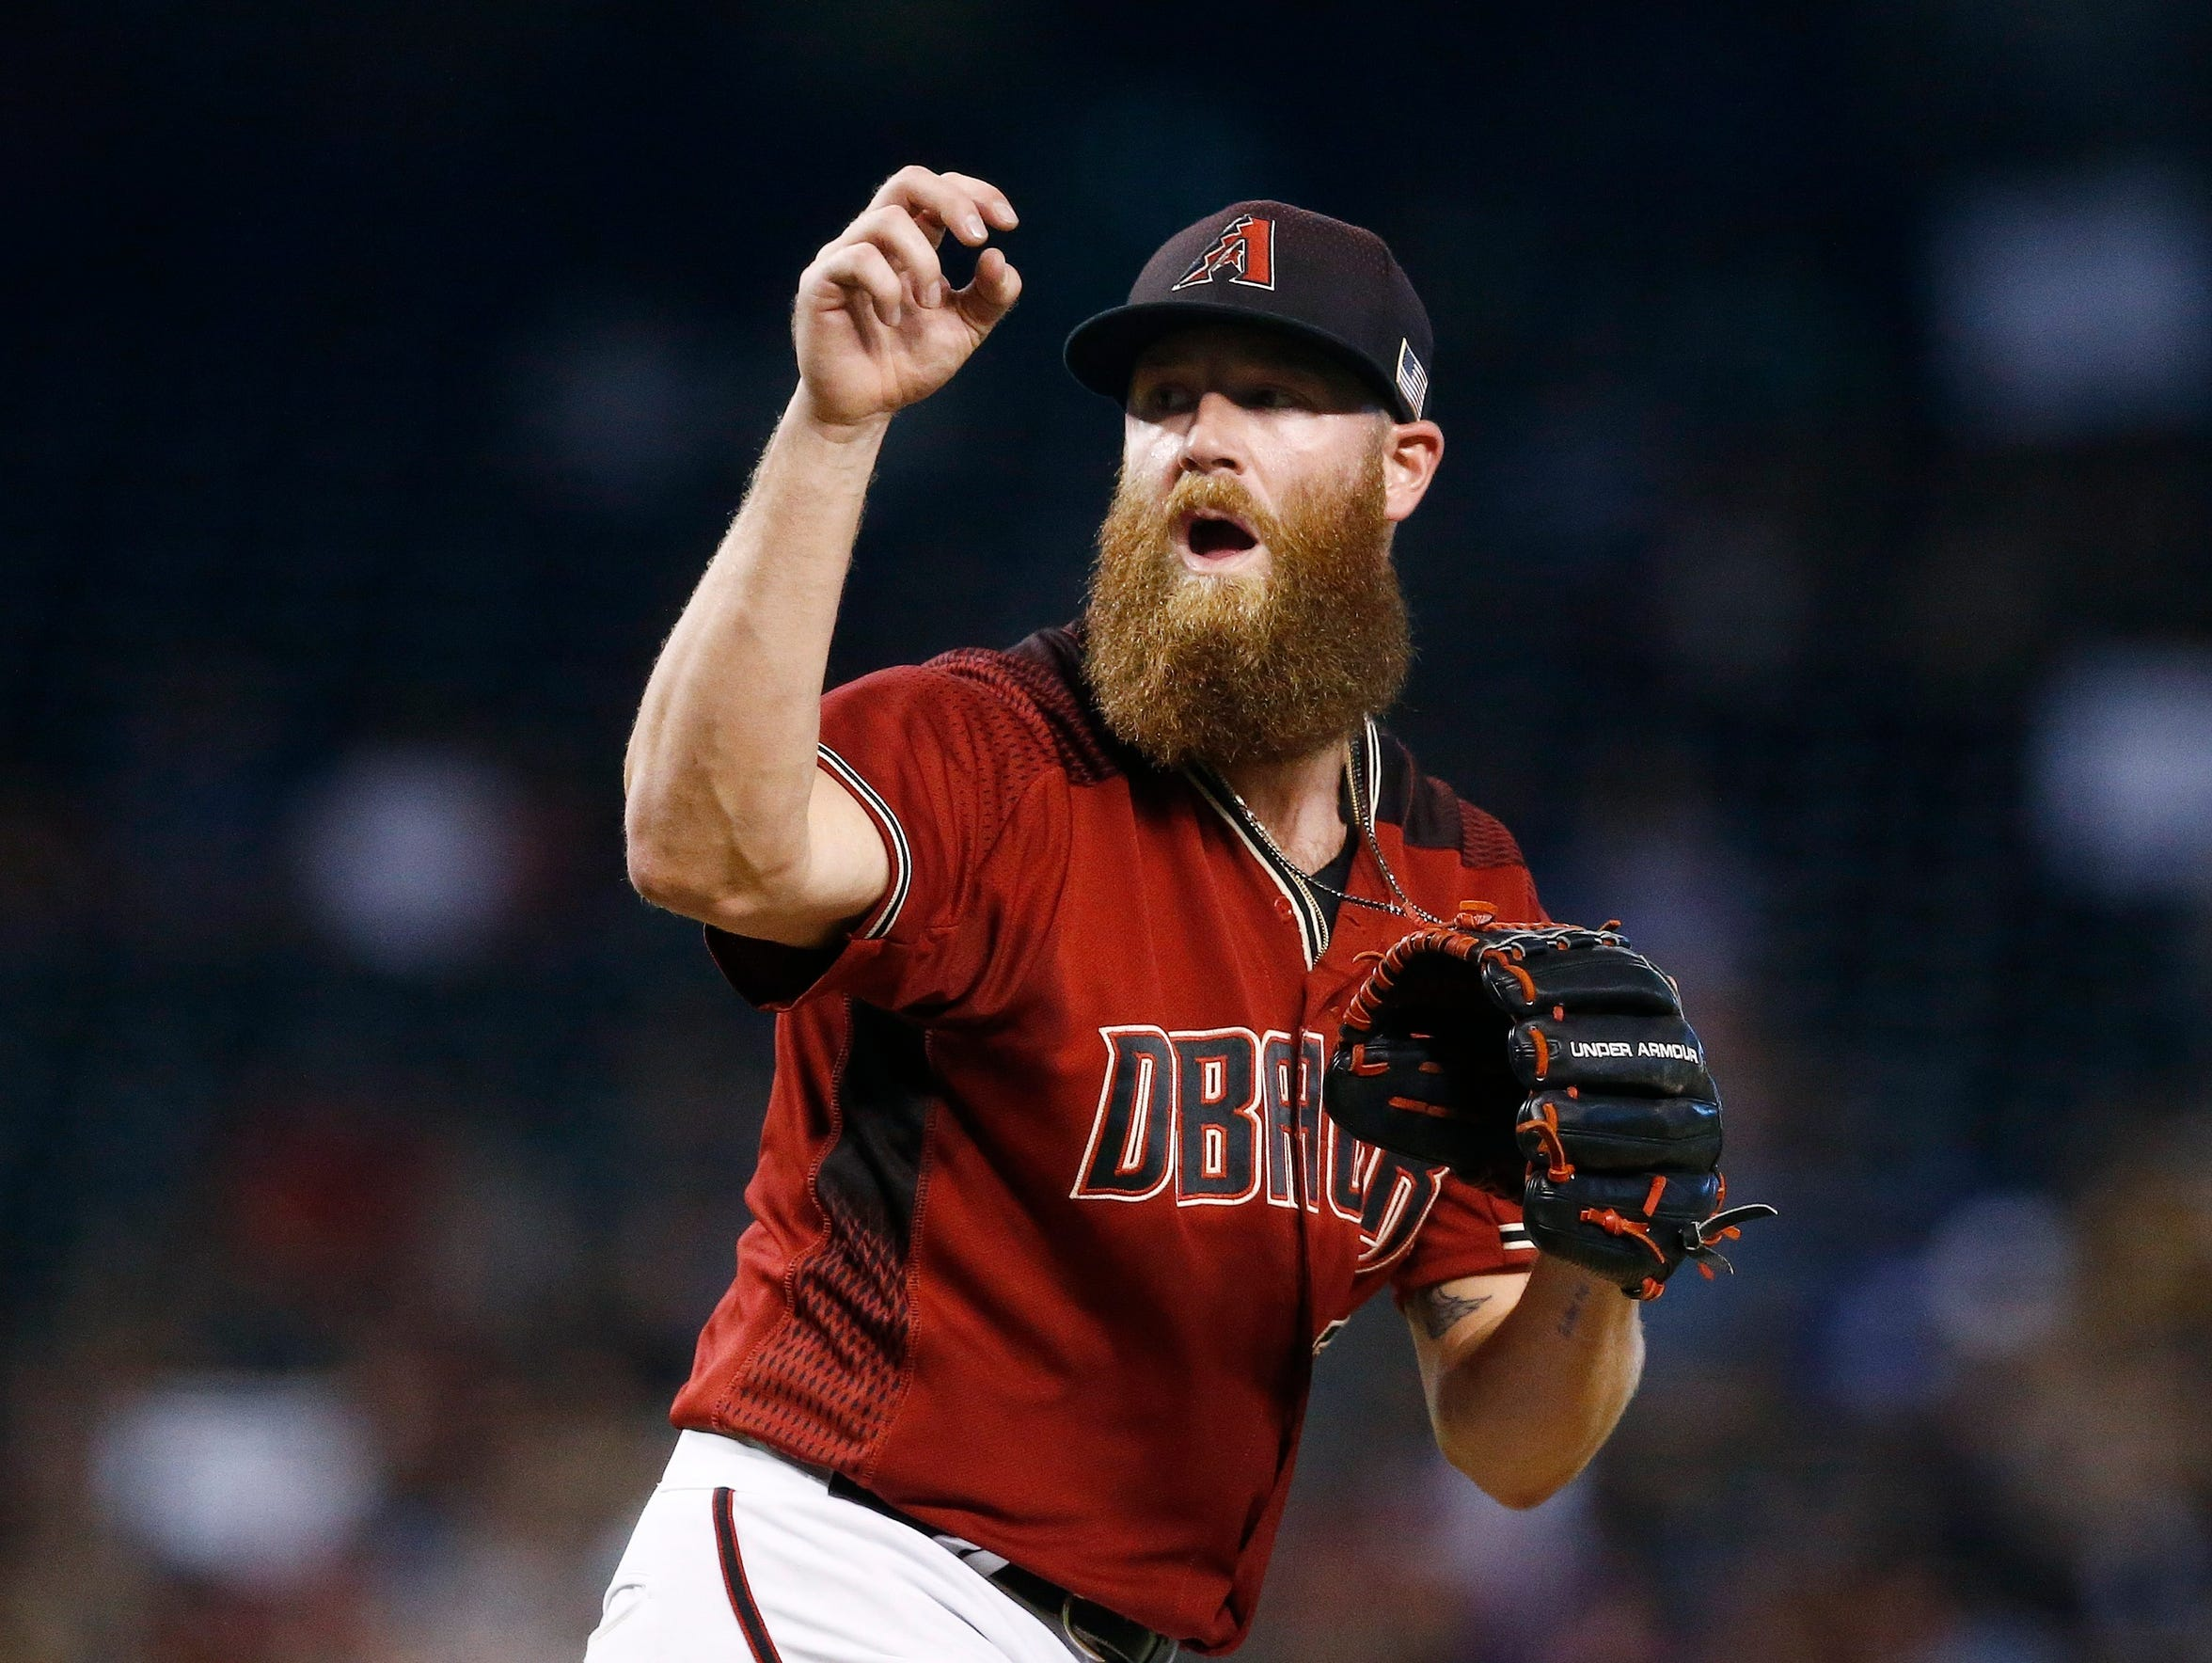 Archie Bradley pitches against the Padres last weekend